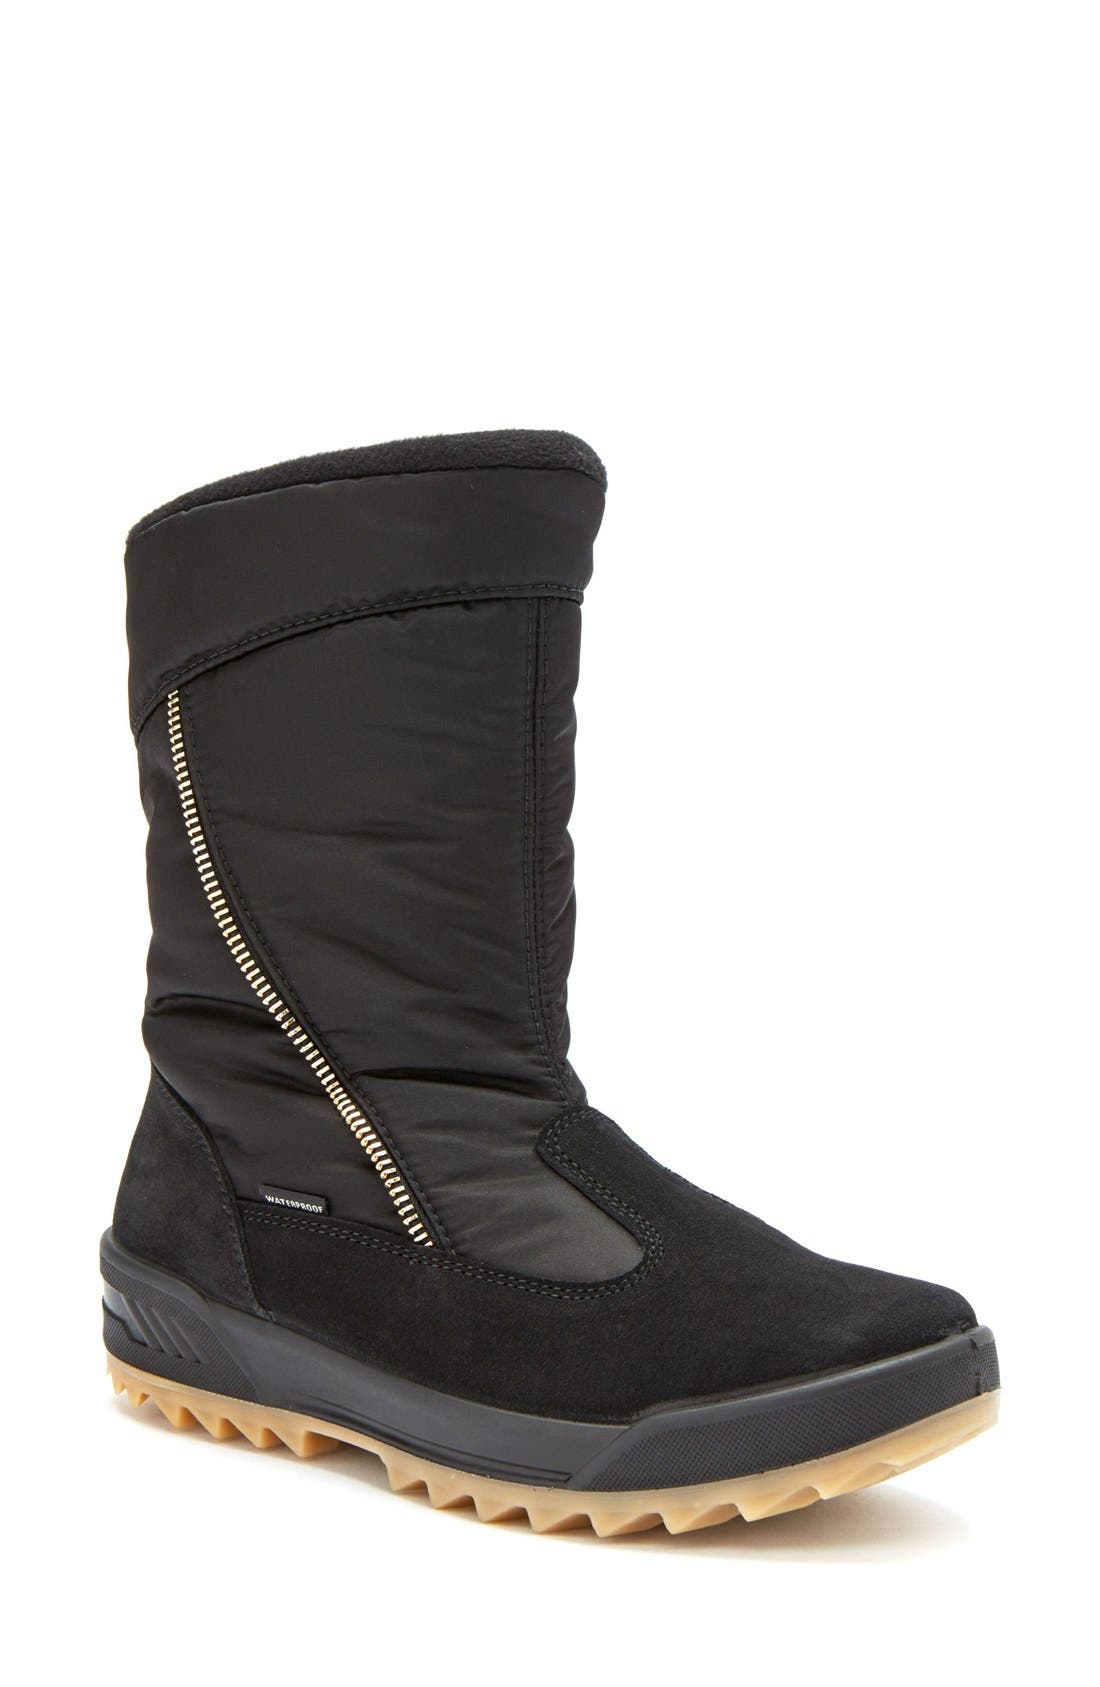 Iceland Waterproof Snow Boot,                         Main,                         color, Black Multi Fabric